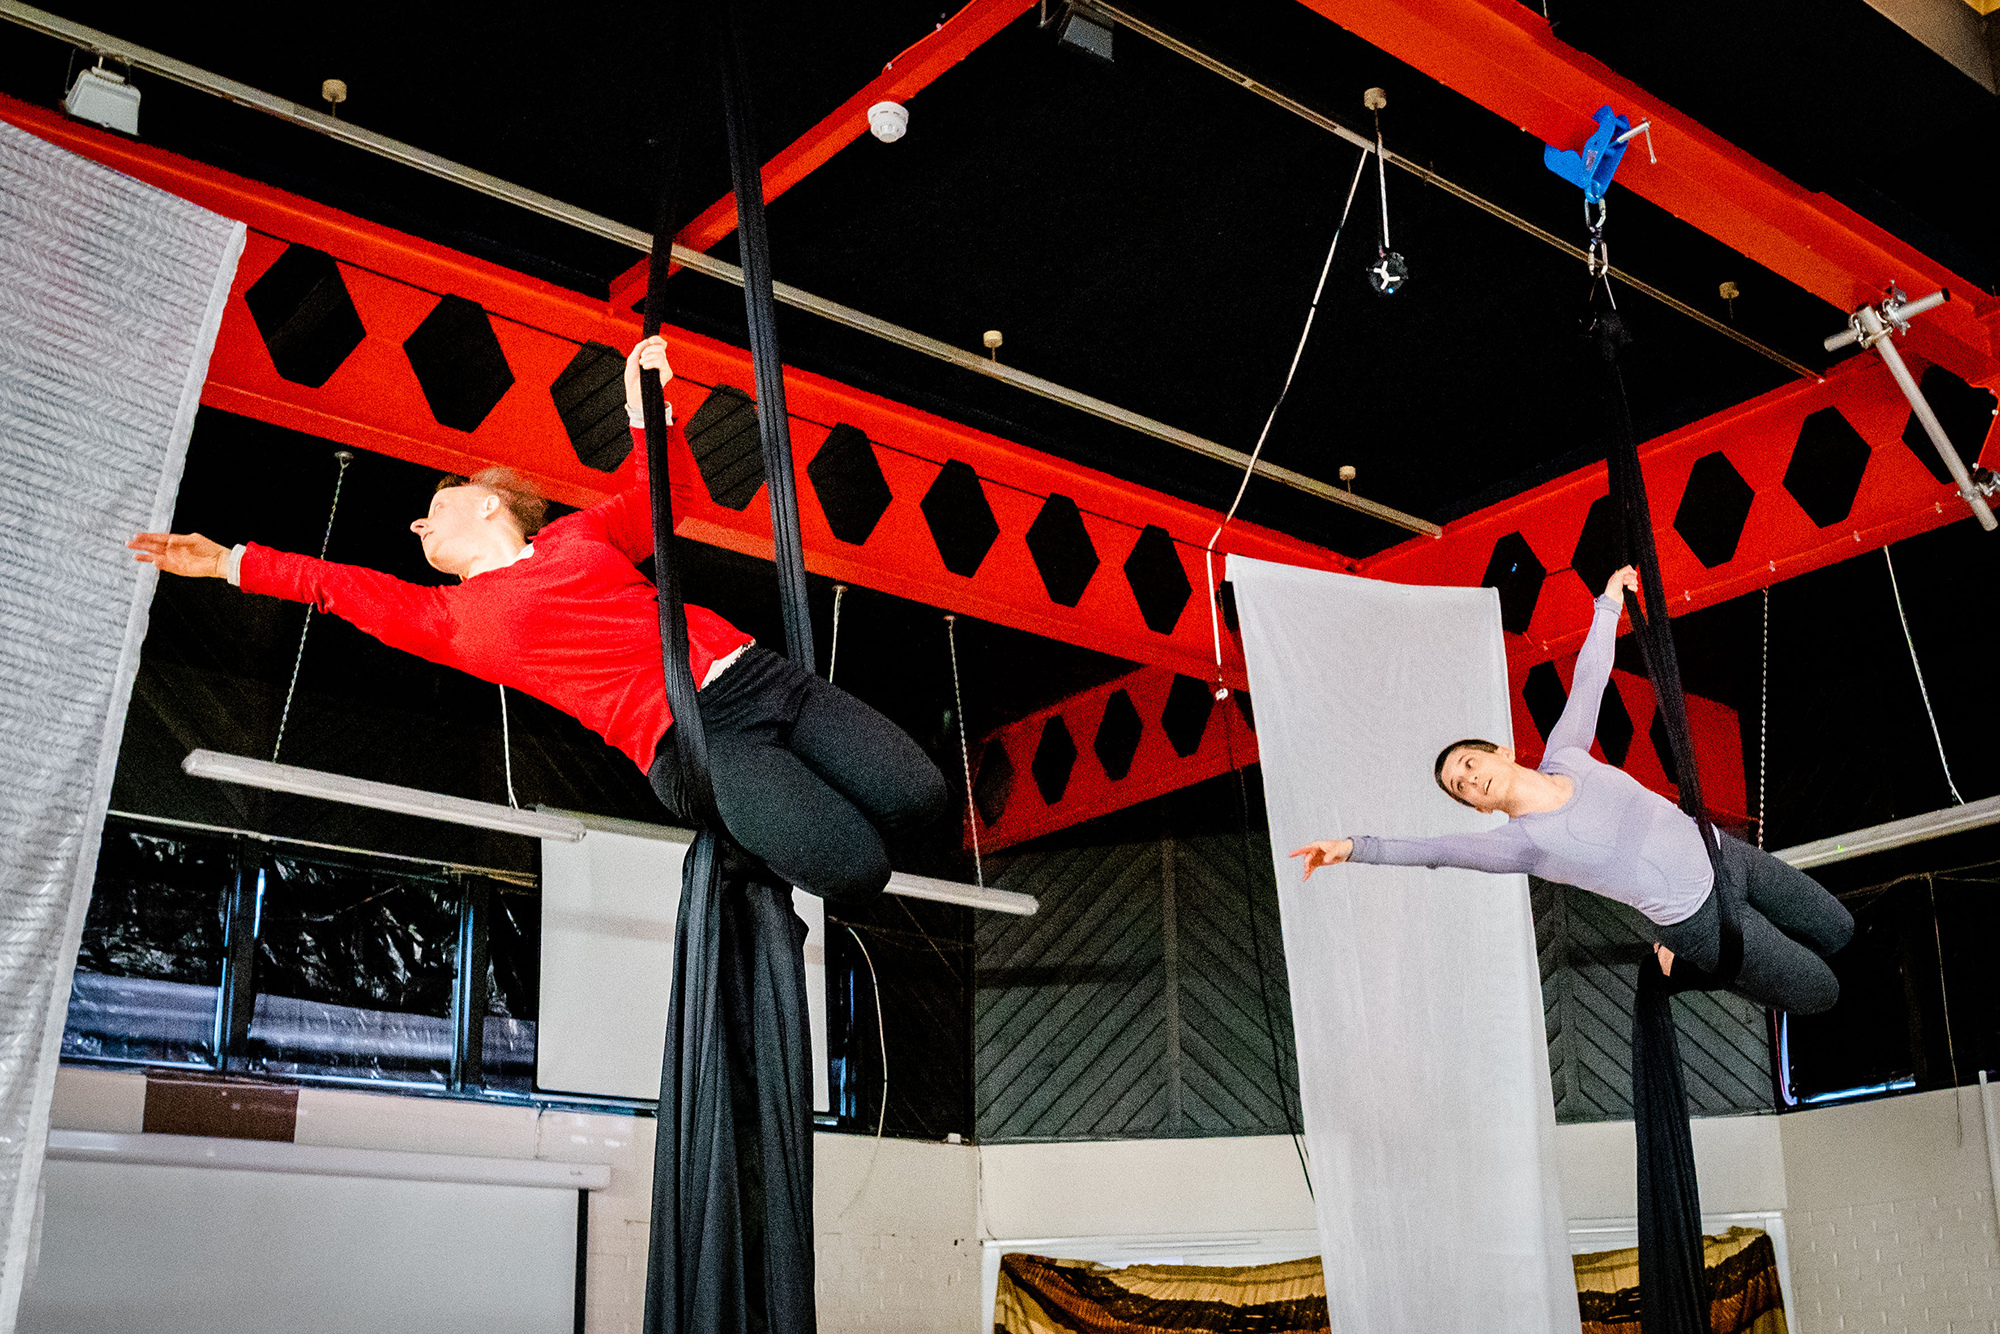 A full shot of two white women 'flying' from right to left suspended from aerial silks